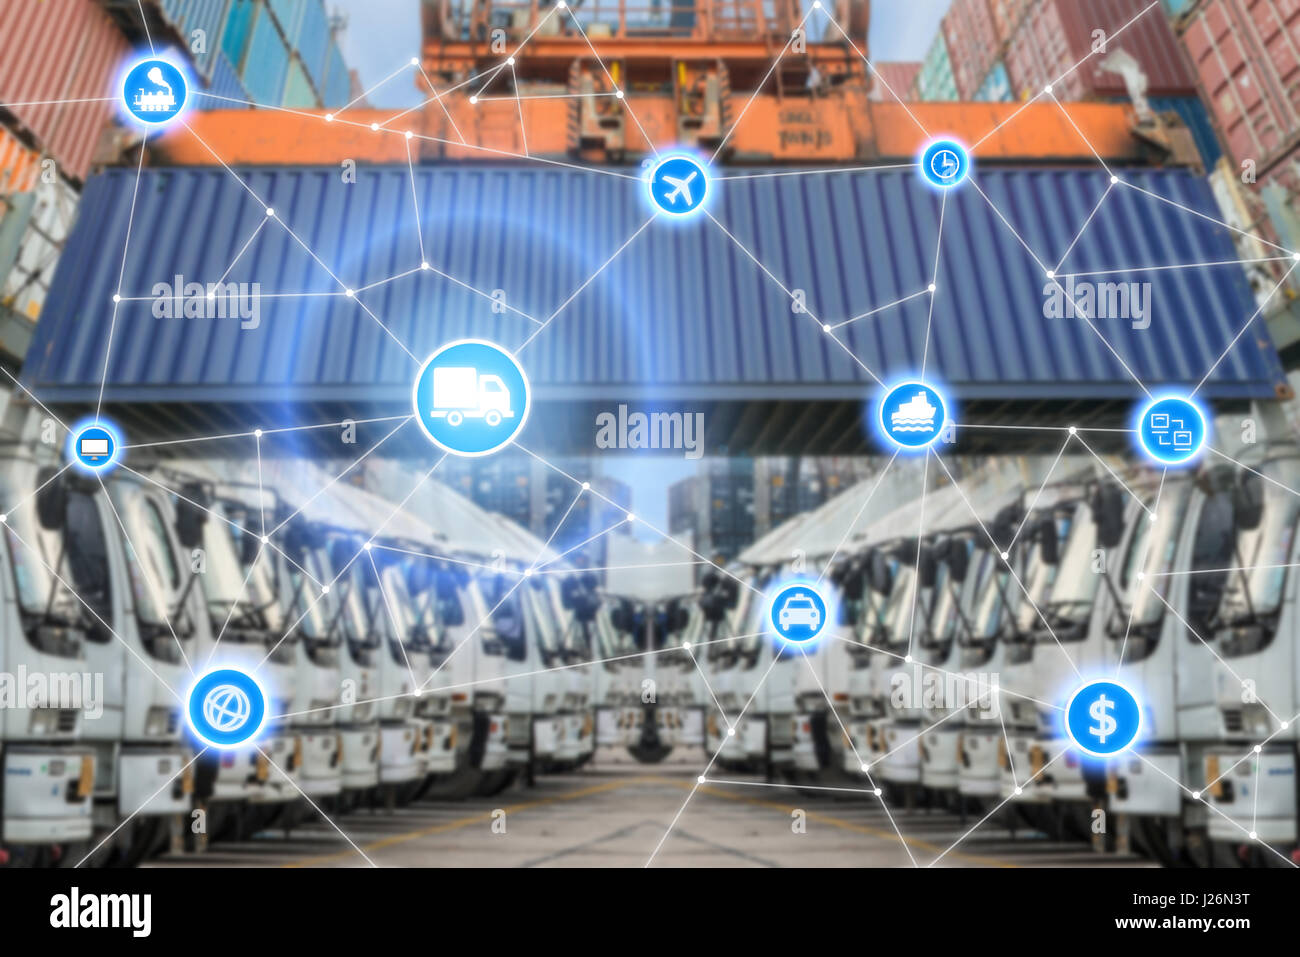 Global business logistics system connection technology interface global partner connection - Stock Image